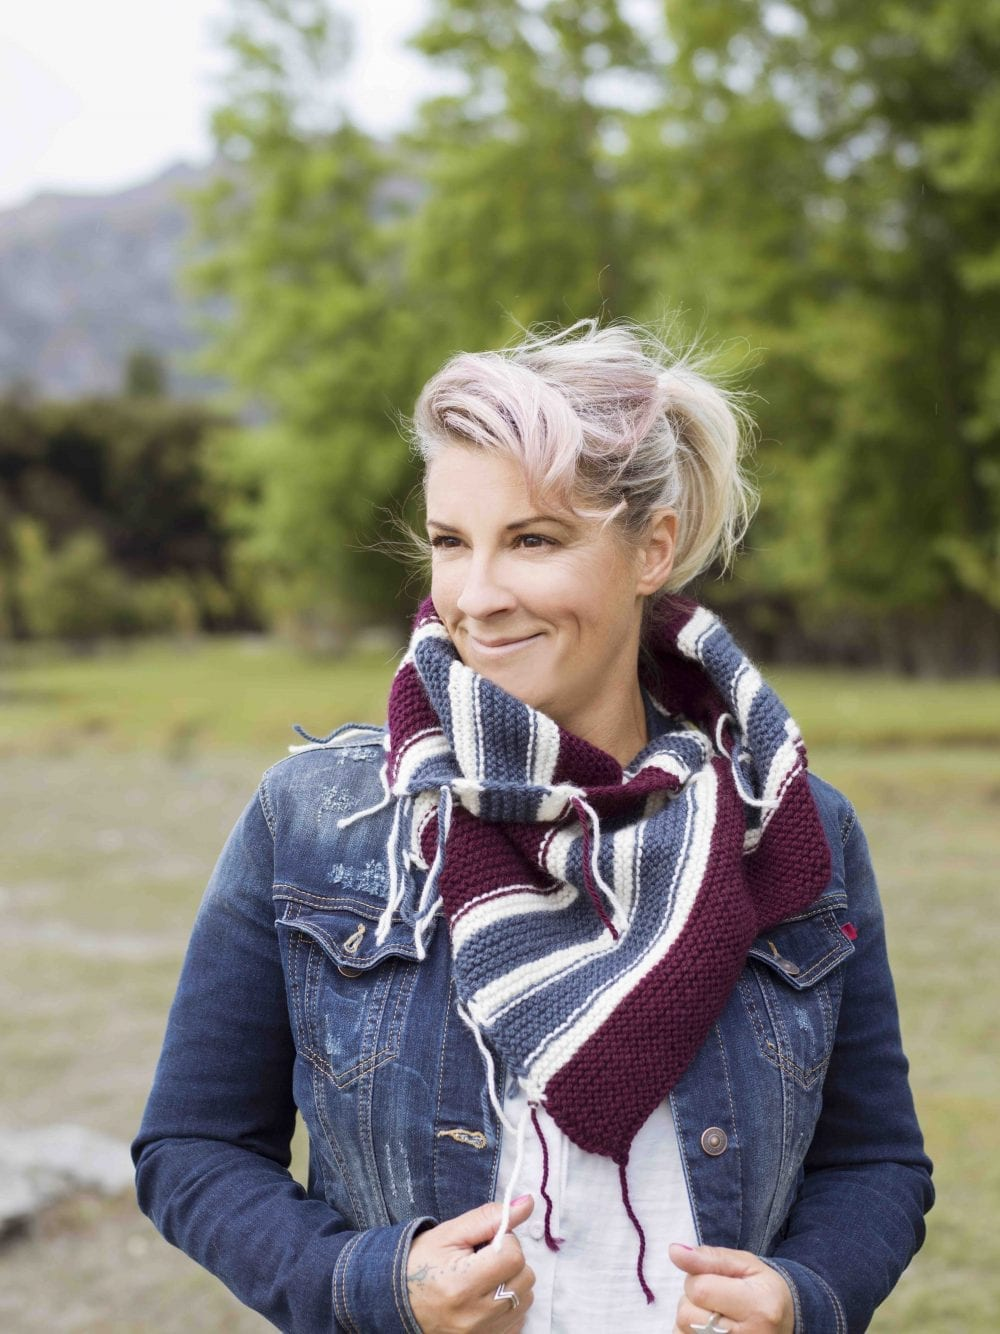 Scraggle scarf free knitting pattern for beginners